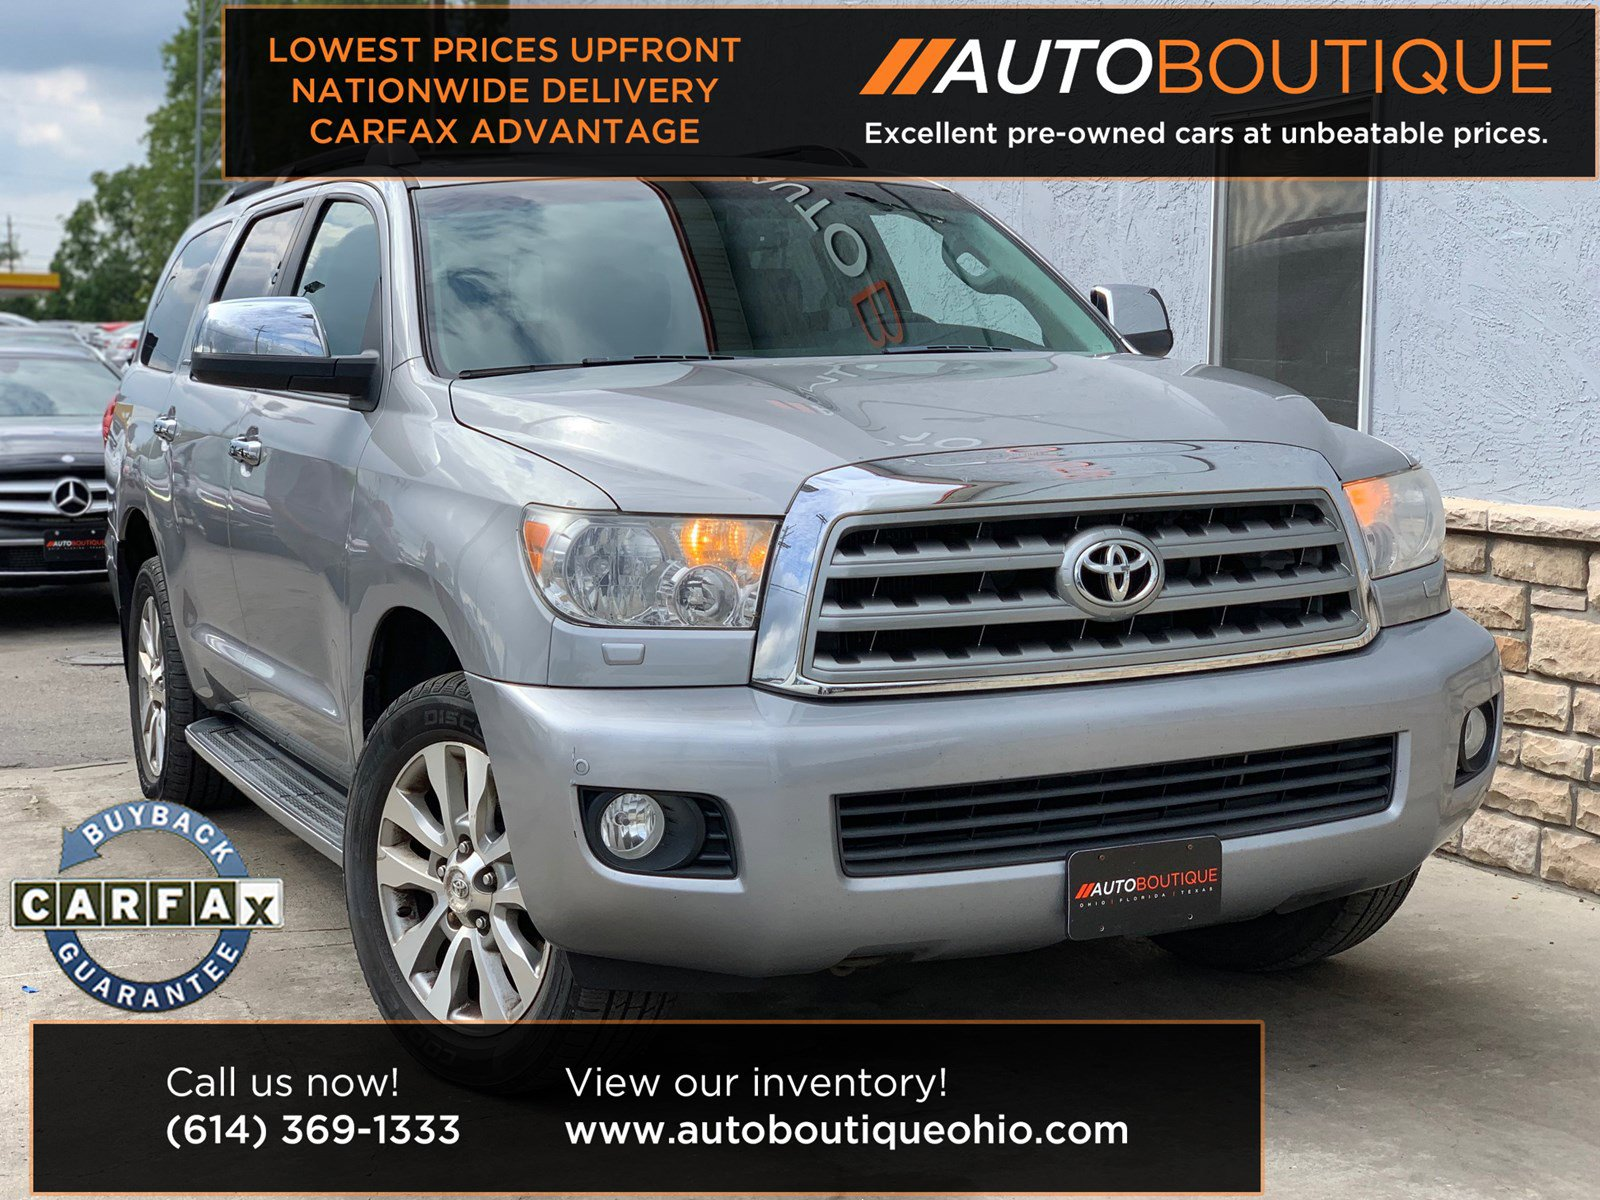 2010 Toyota Sequoia 4WD Limited image